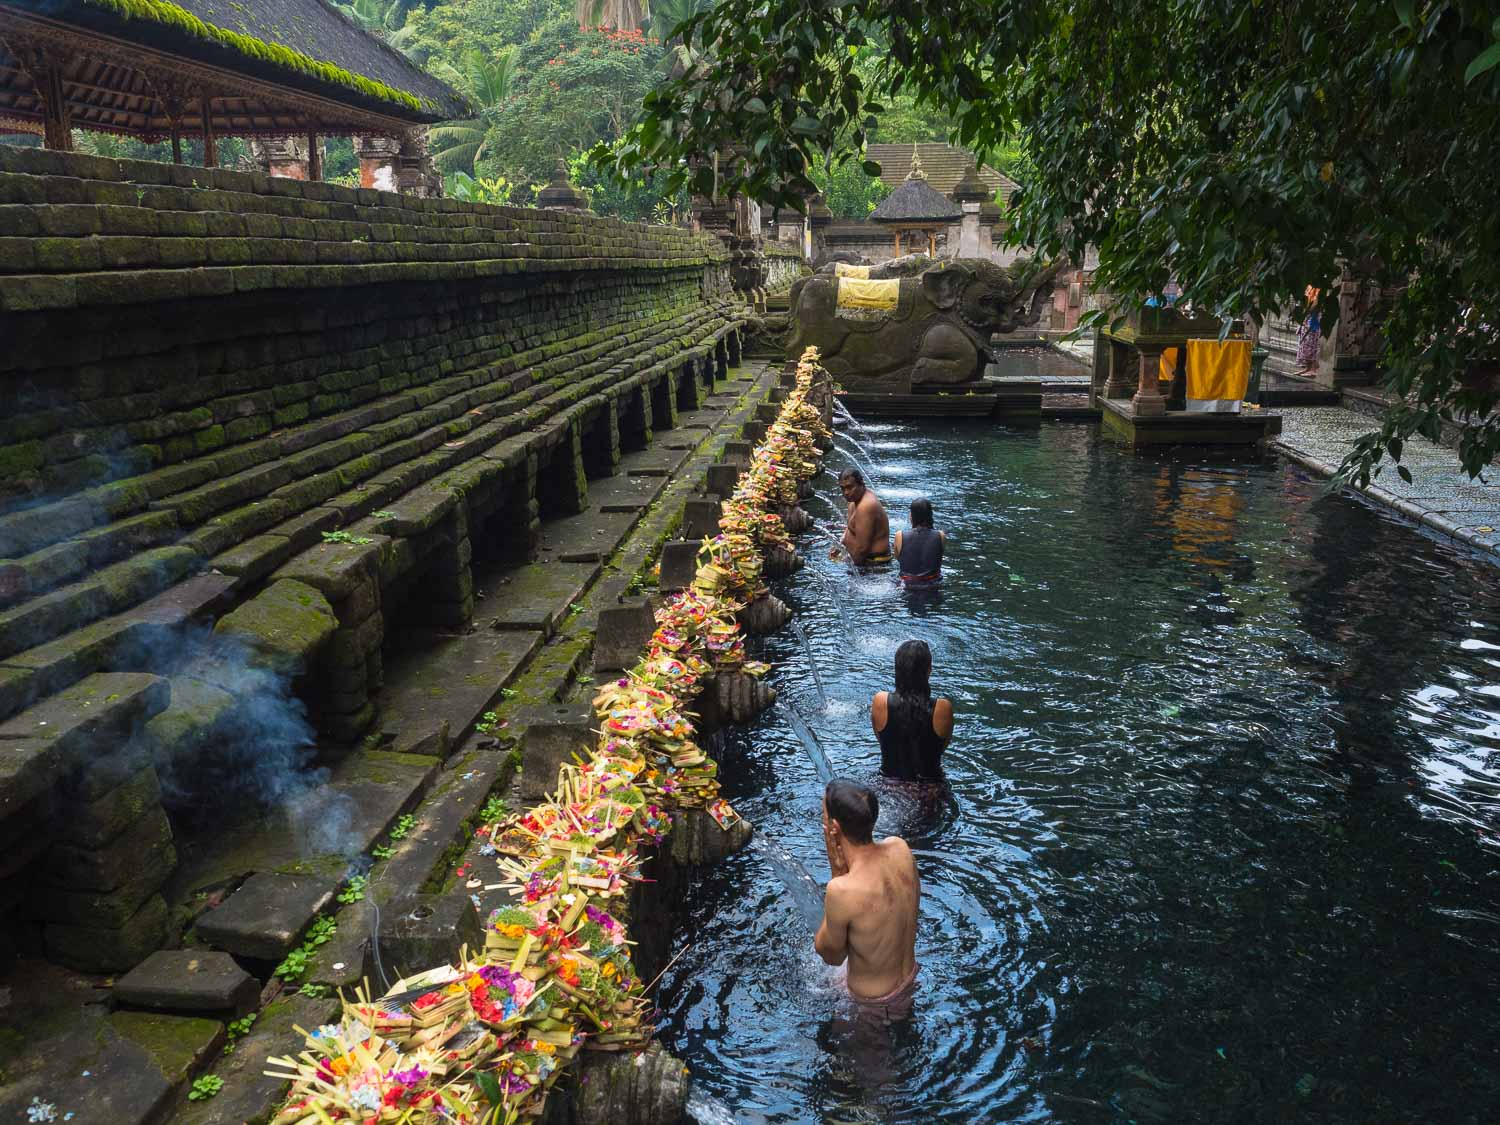 Pura Tirta Empul and its holy fountains